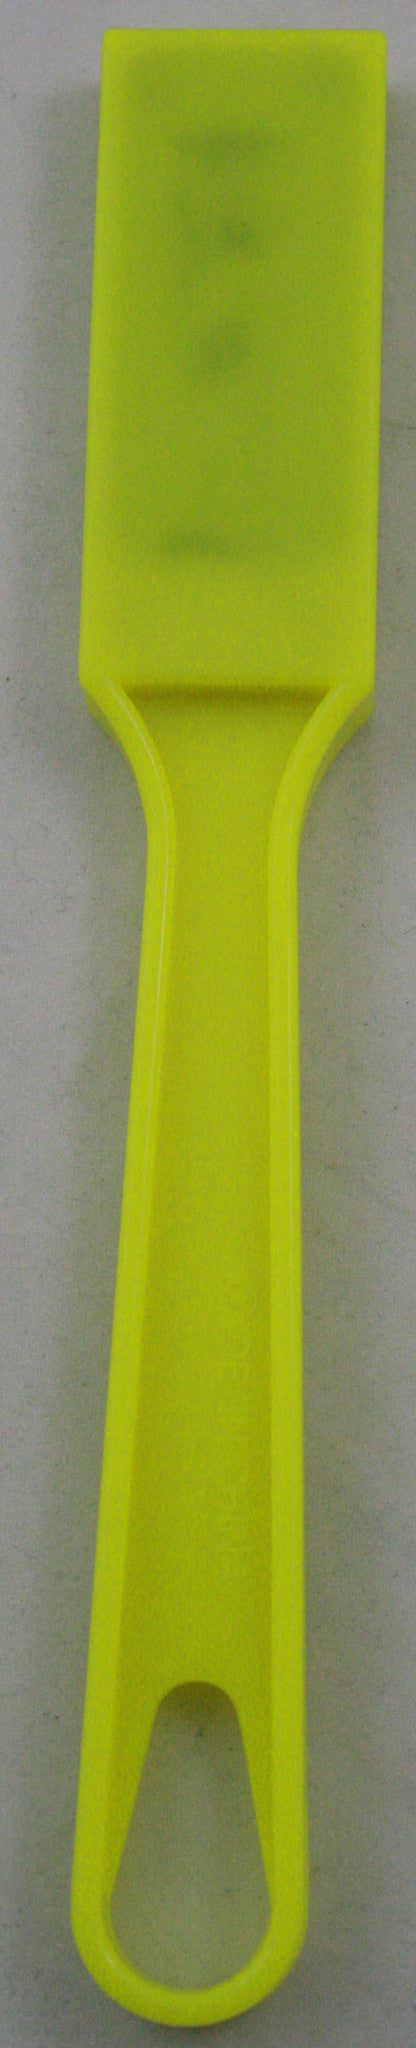 Neon Yellow 8 Inch Magnetic Wand Toy - Off The Wall Toys and Gifts